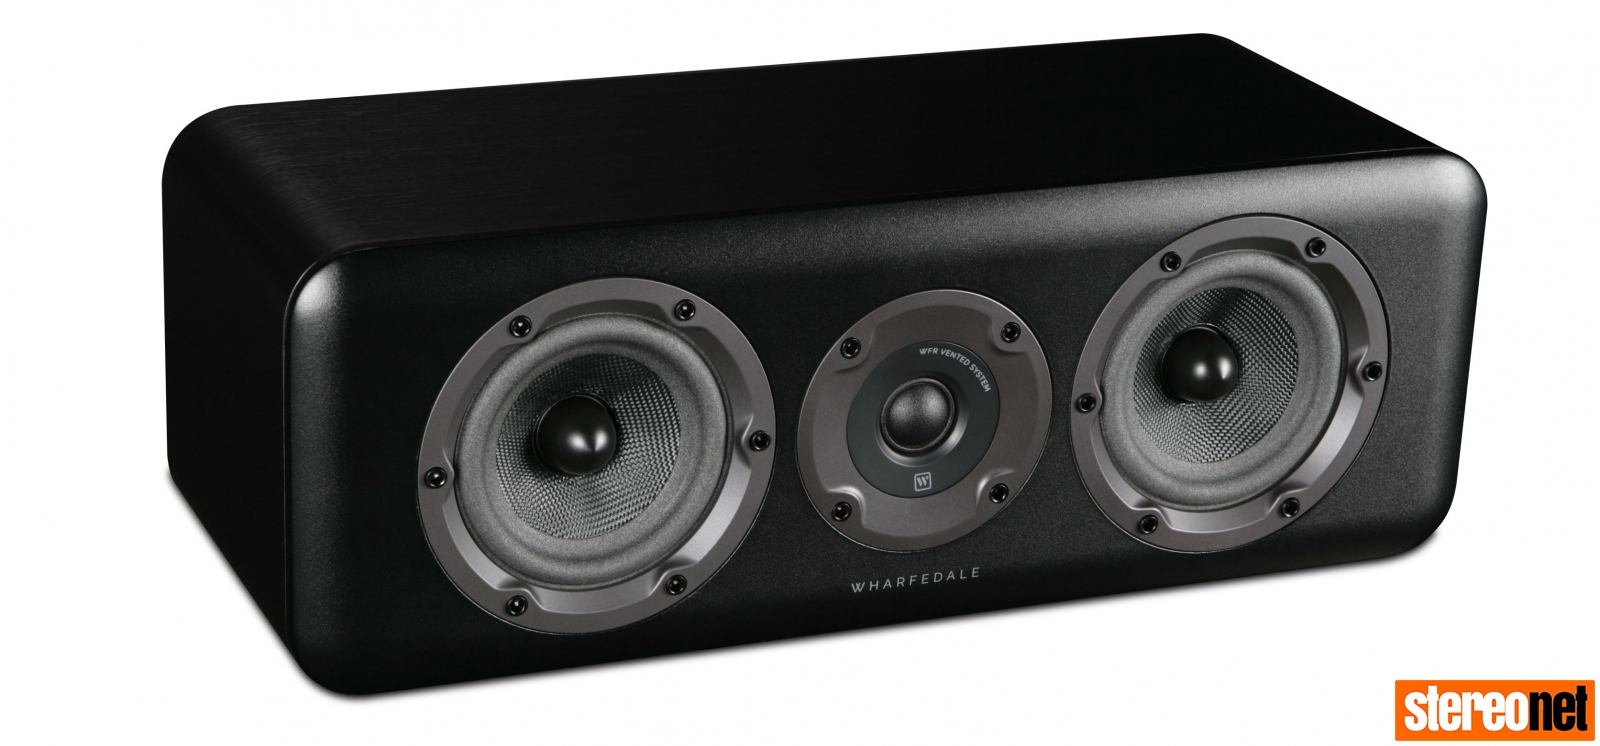 wharfedale d300 center speaker